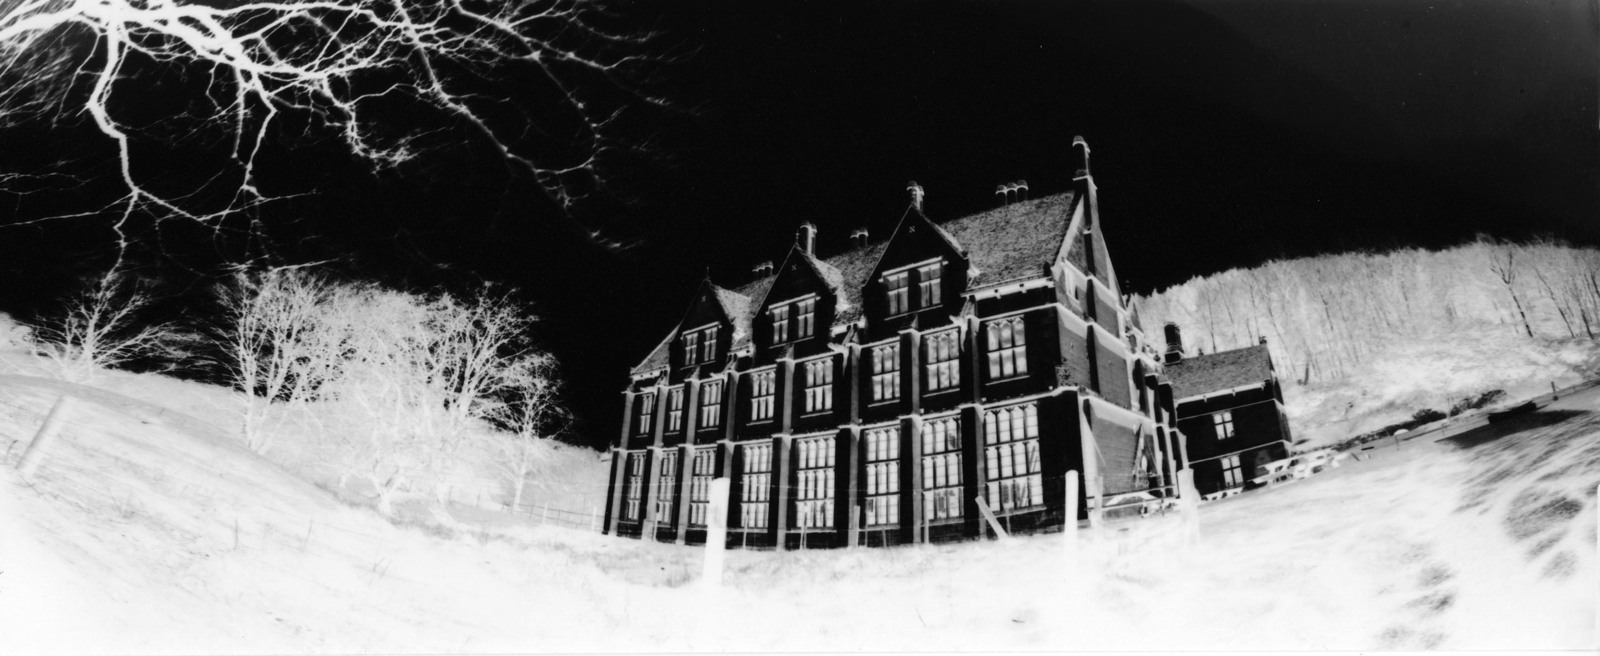 7. Woodchester Mansion